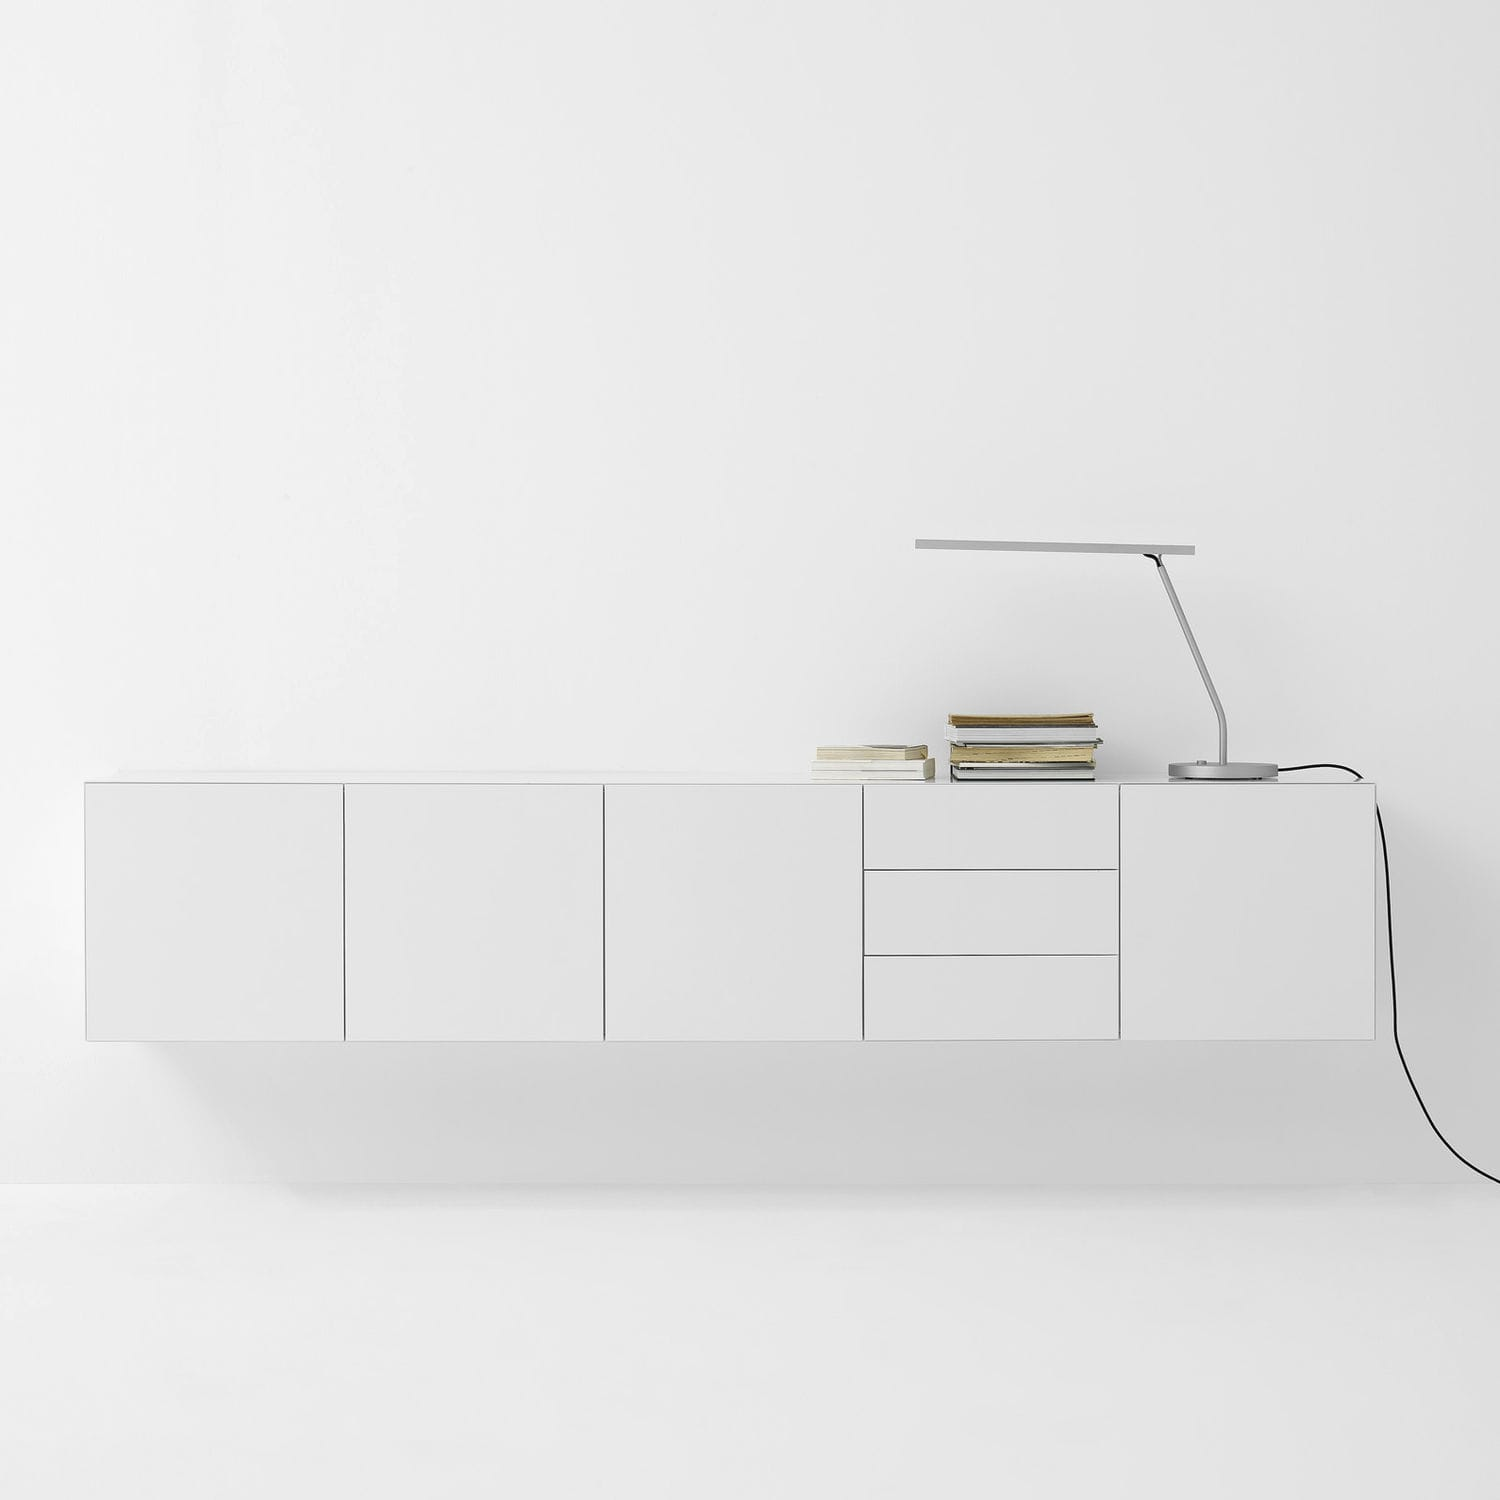 Living Room Living Room Wall contemporary living room wall unit vision elements by karel boonzaaijer pierre mazairac